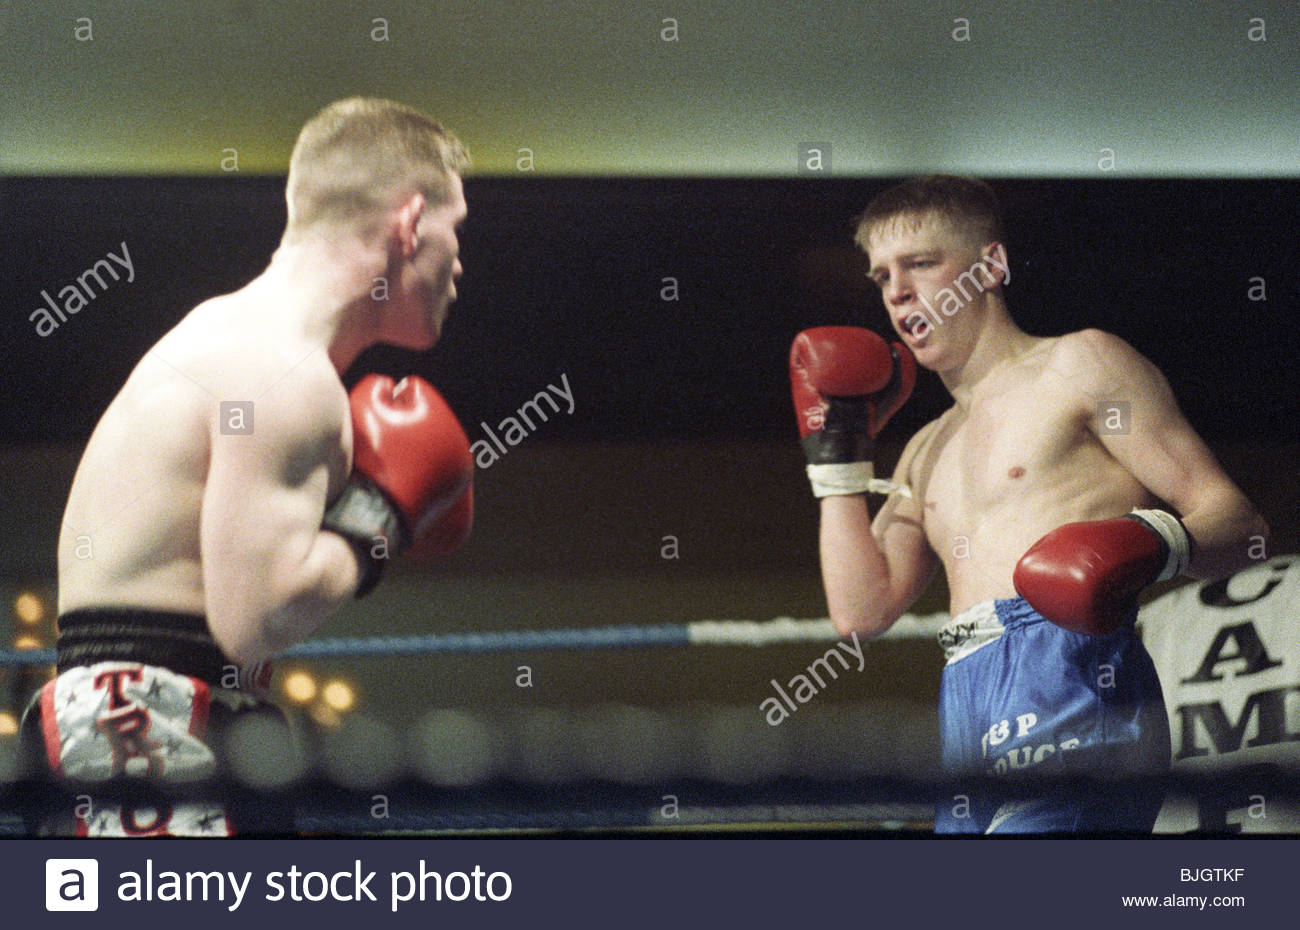 31/01/92 LIGHTWEIGHT CONTEST ALAN MCDOWAL V CHARLES SHEPPARD HOSPITALITY INN - GLASGOW Alan McDowall (right) backs - Stock Image